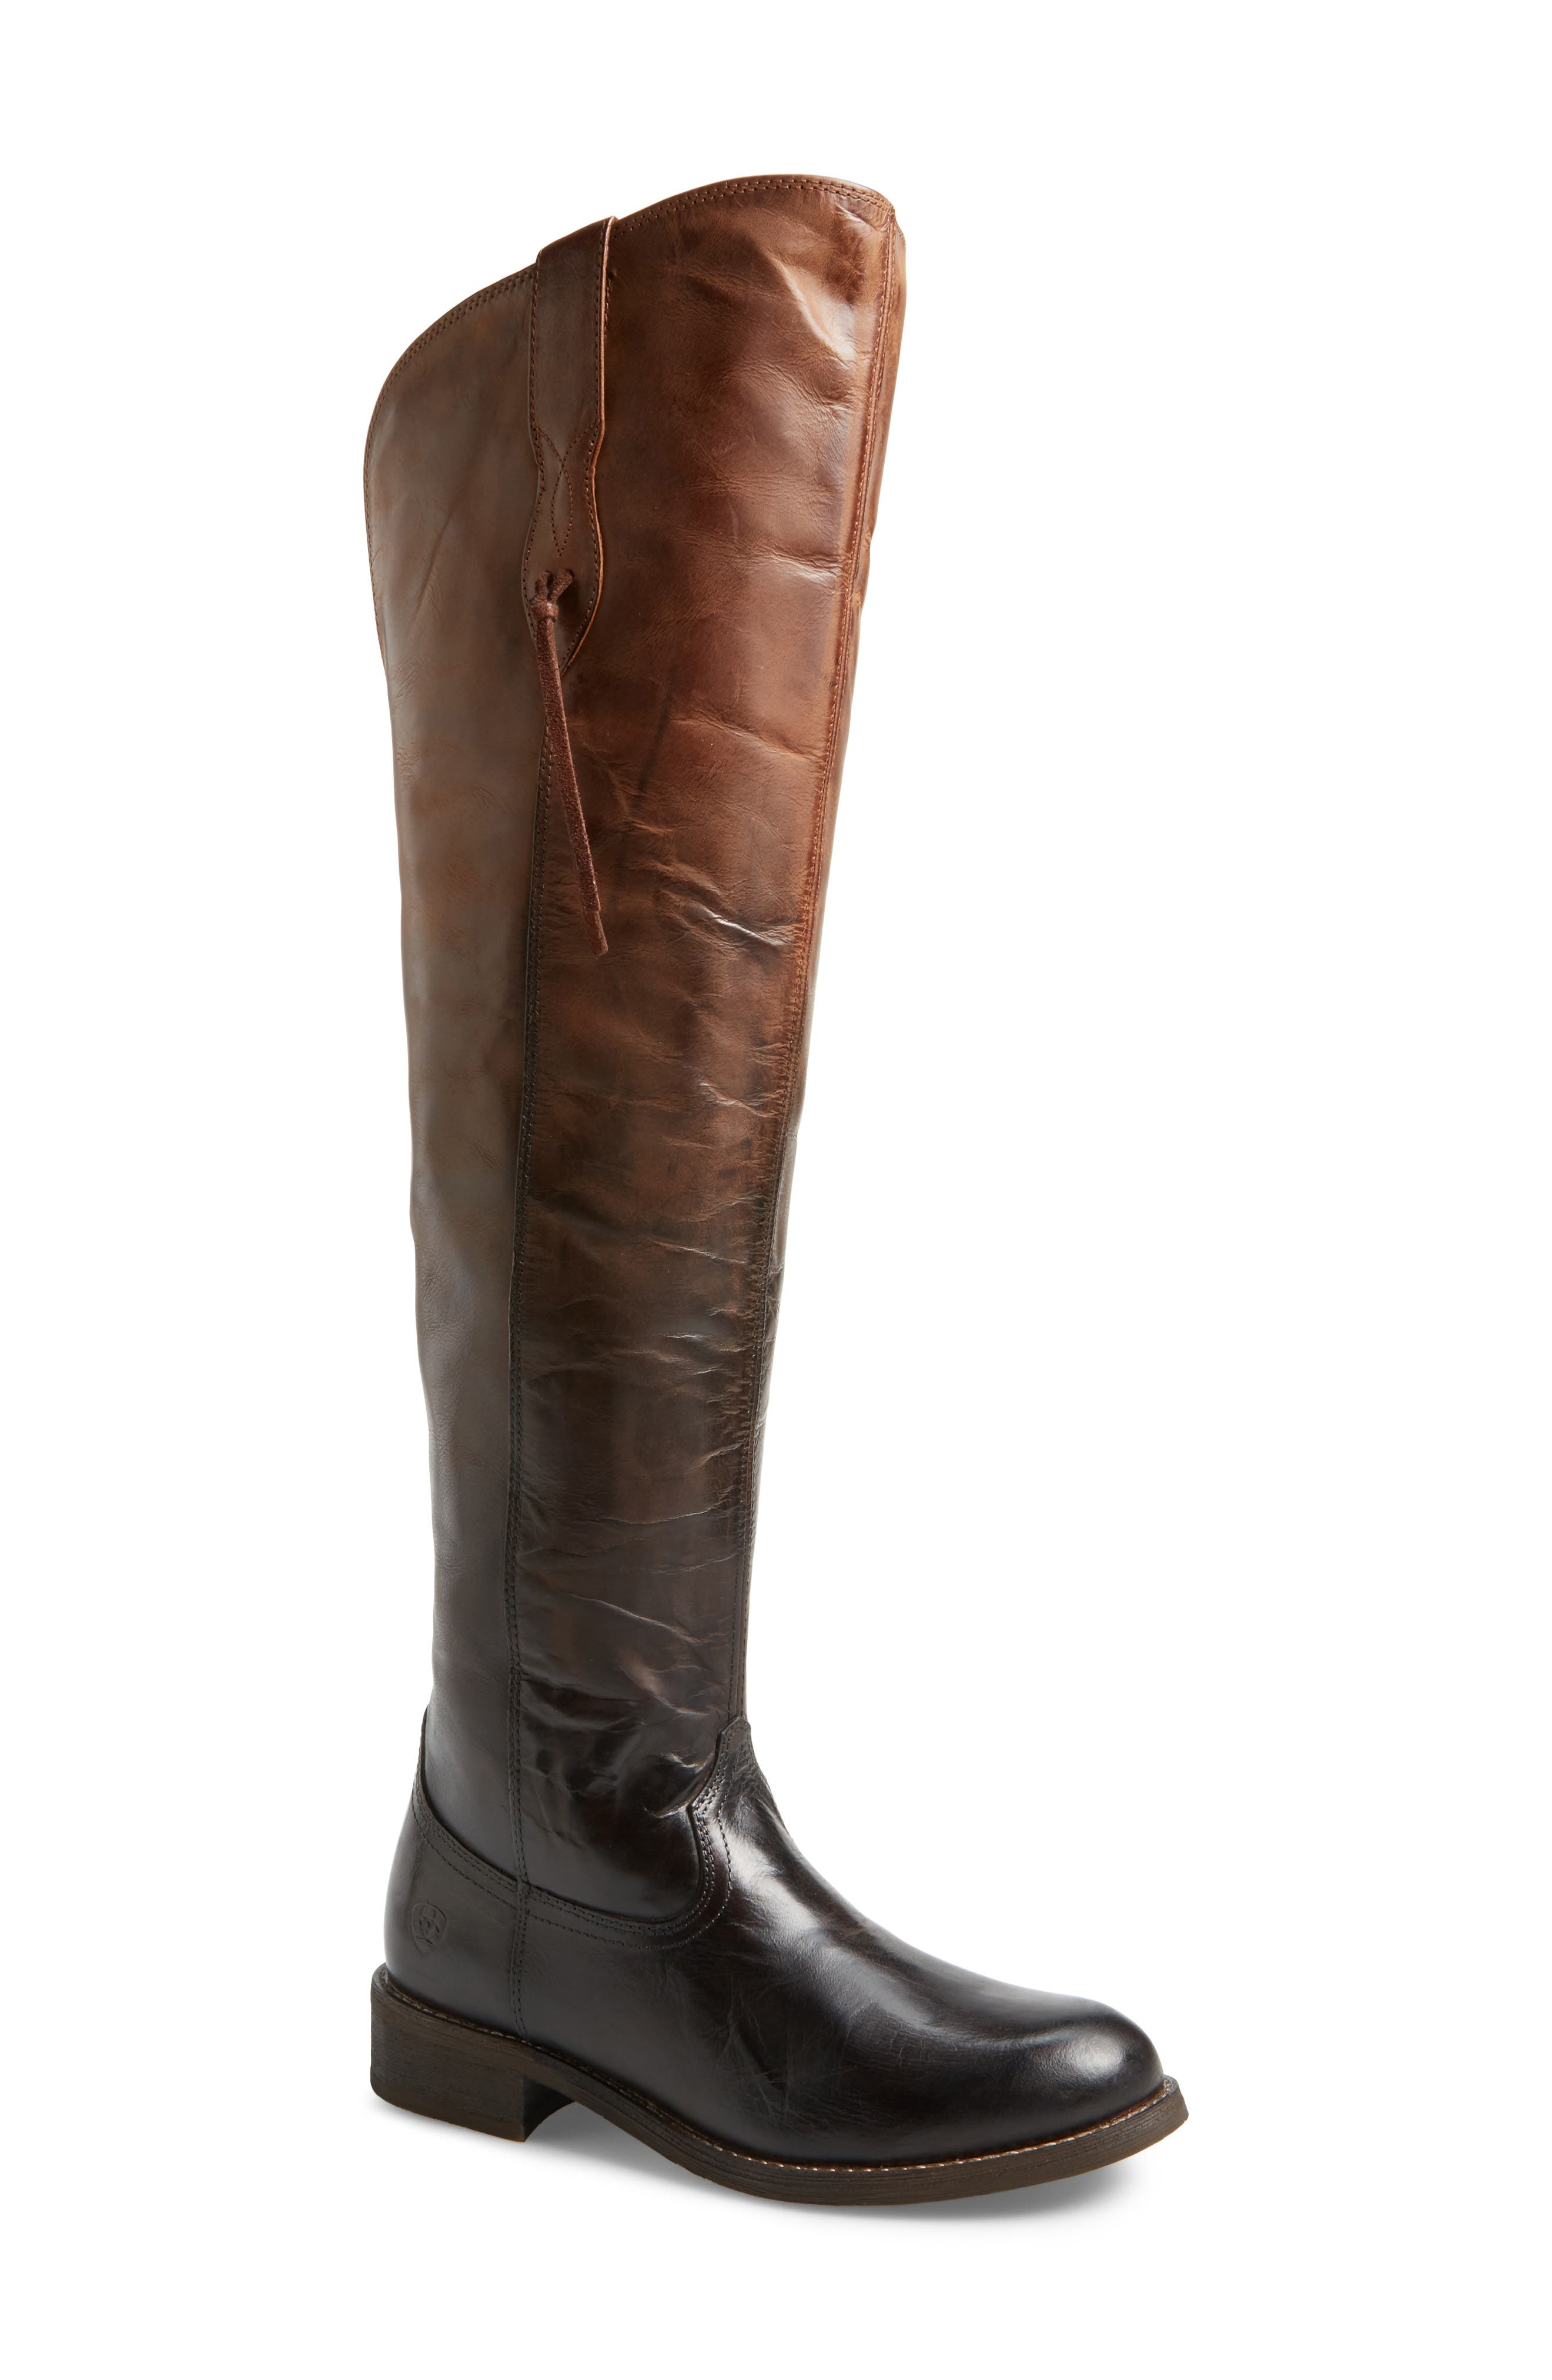 Farrah Over the Knee Boot,                             Main thumbnail 1, color,                             Sassy Chocolate Leather